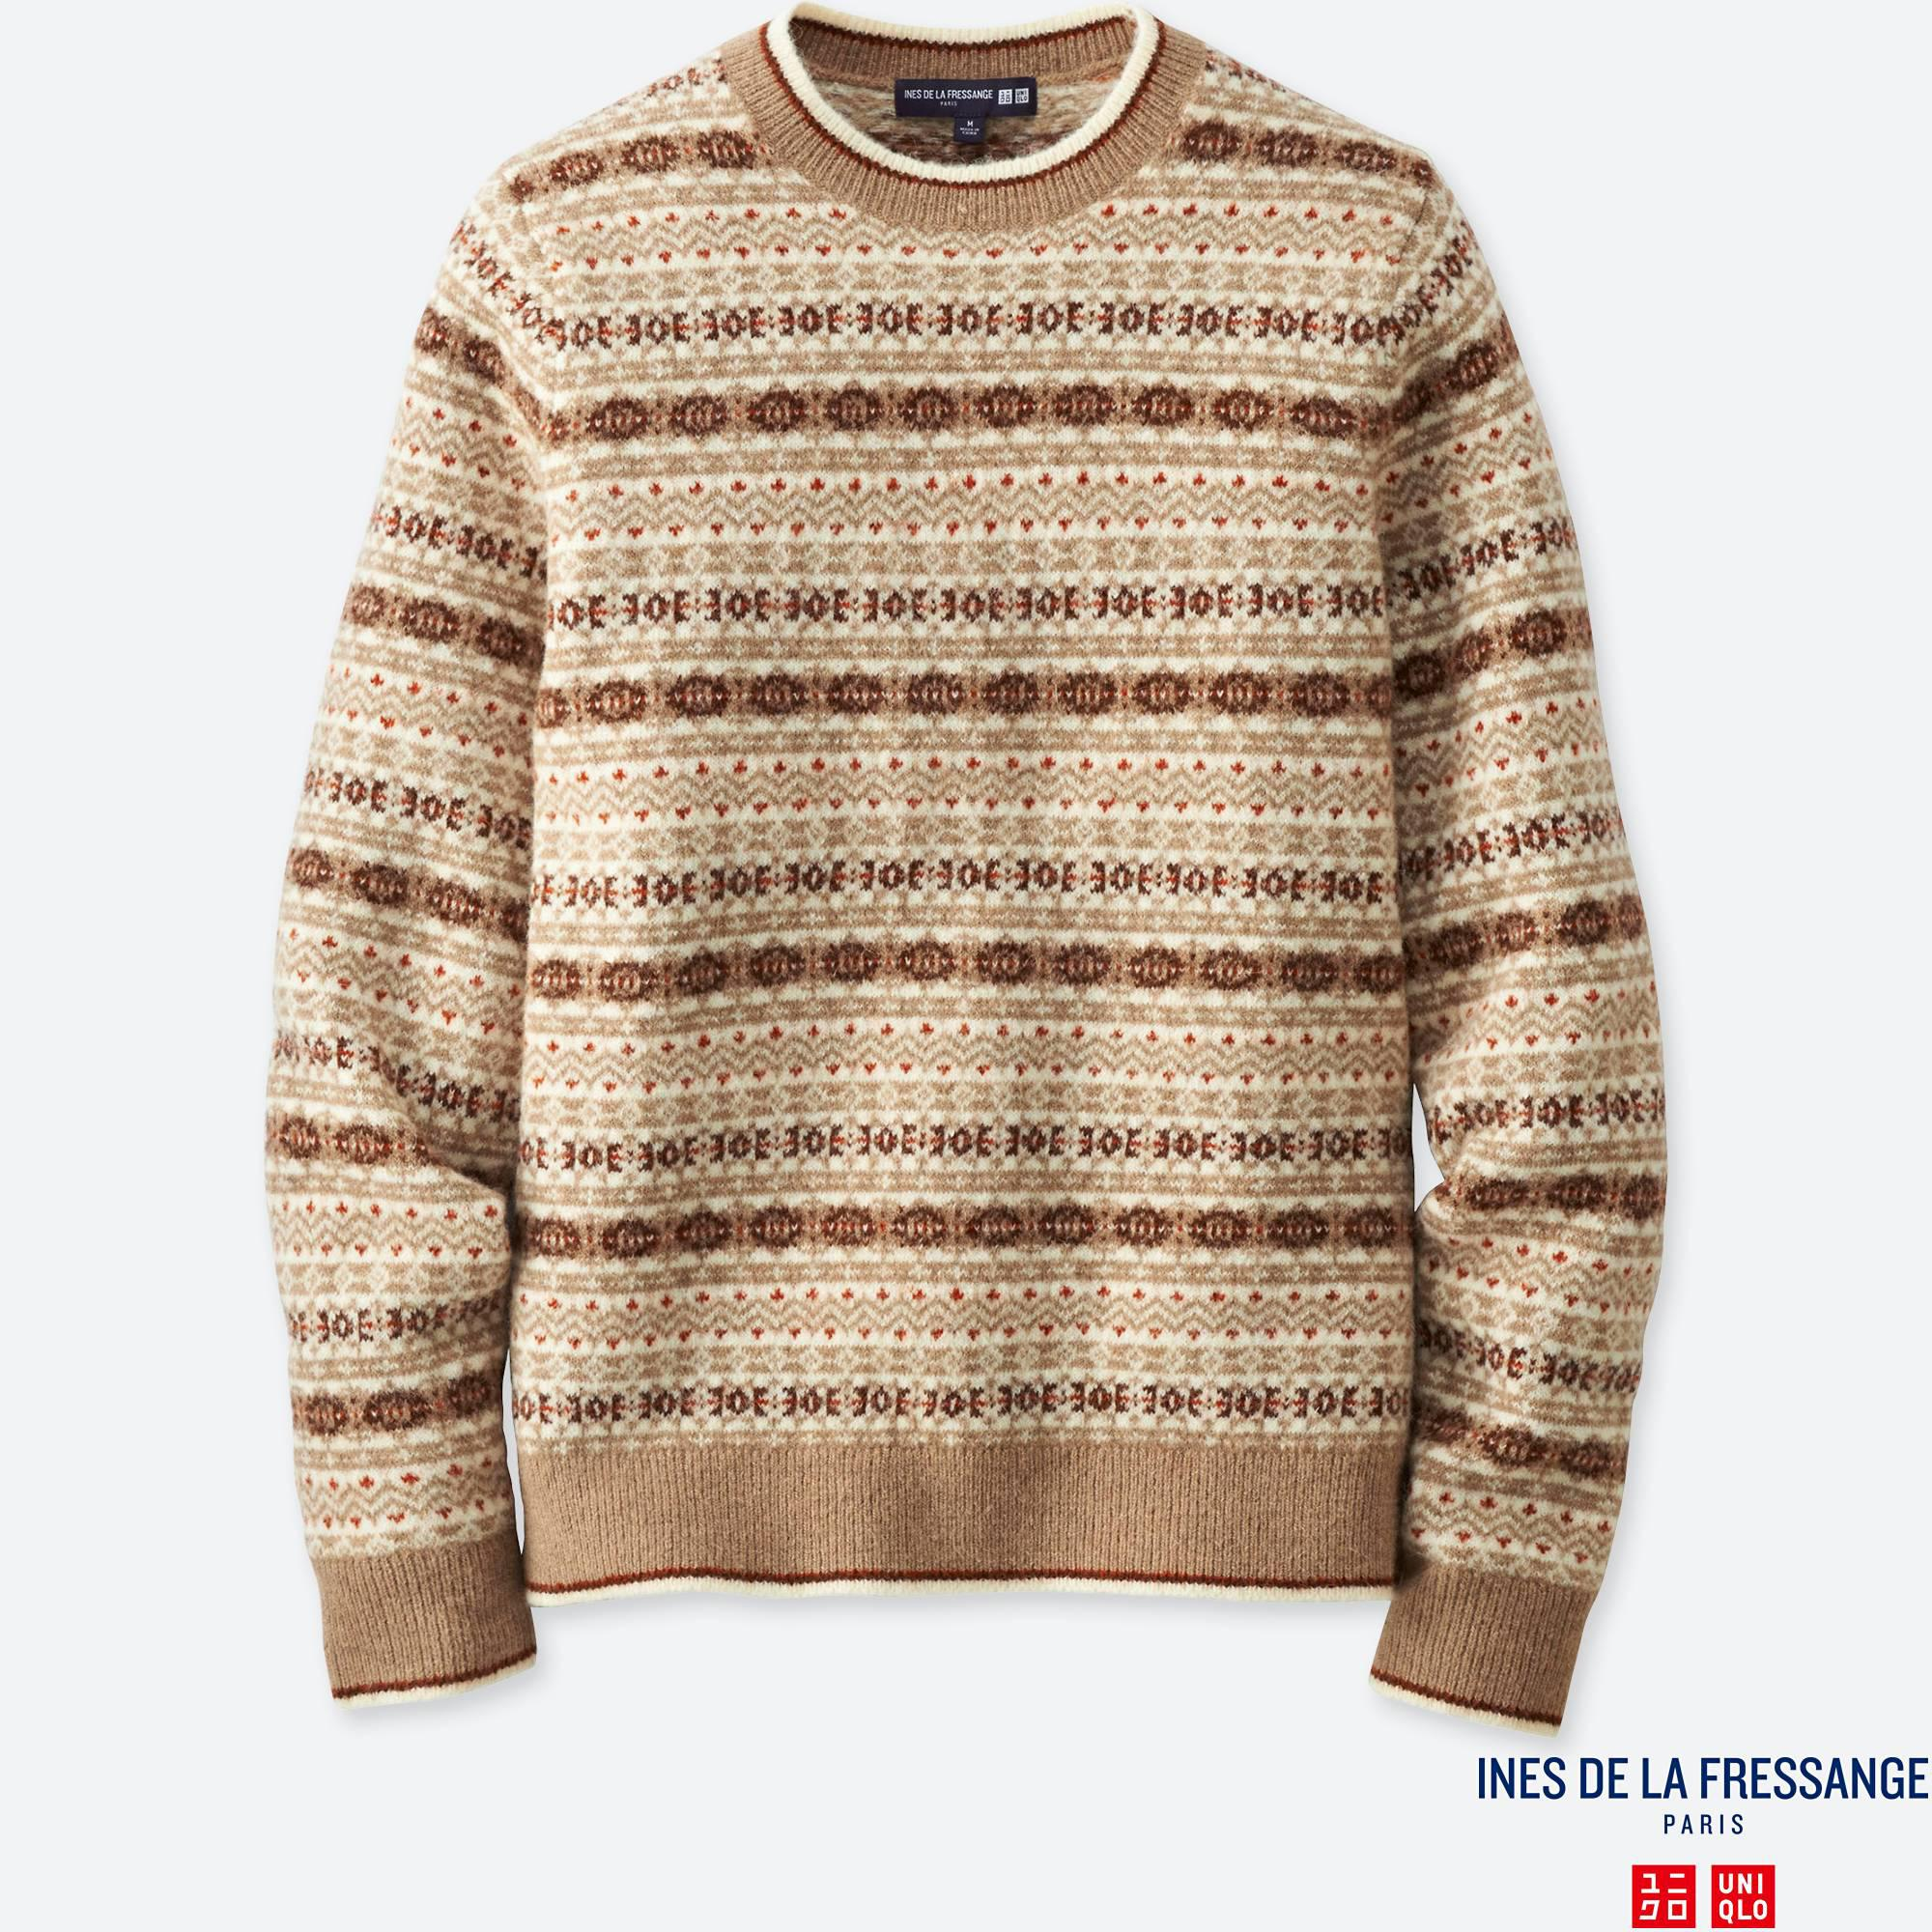 Uniqlo Men Idlf Jacquard Crewneck Long-sleeve Sweater in Natural ...